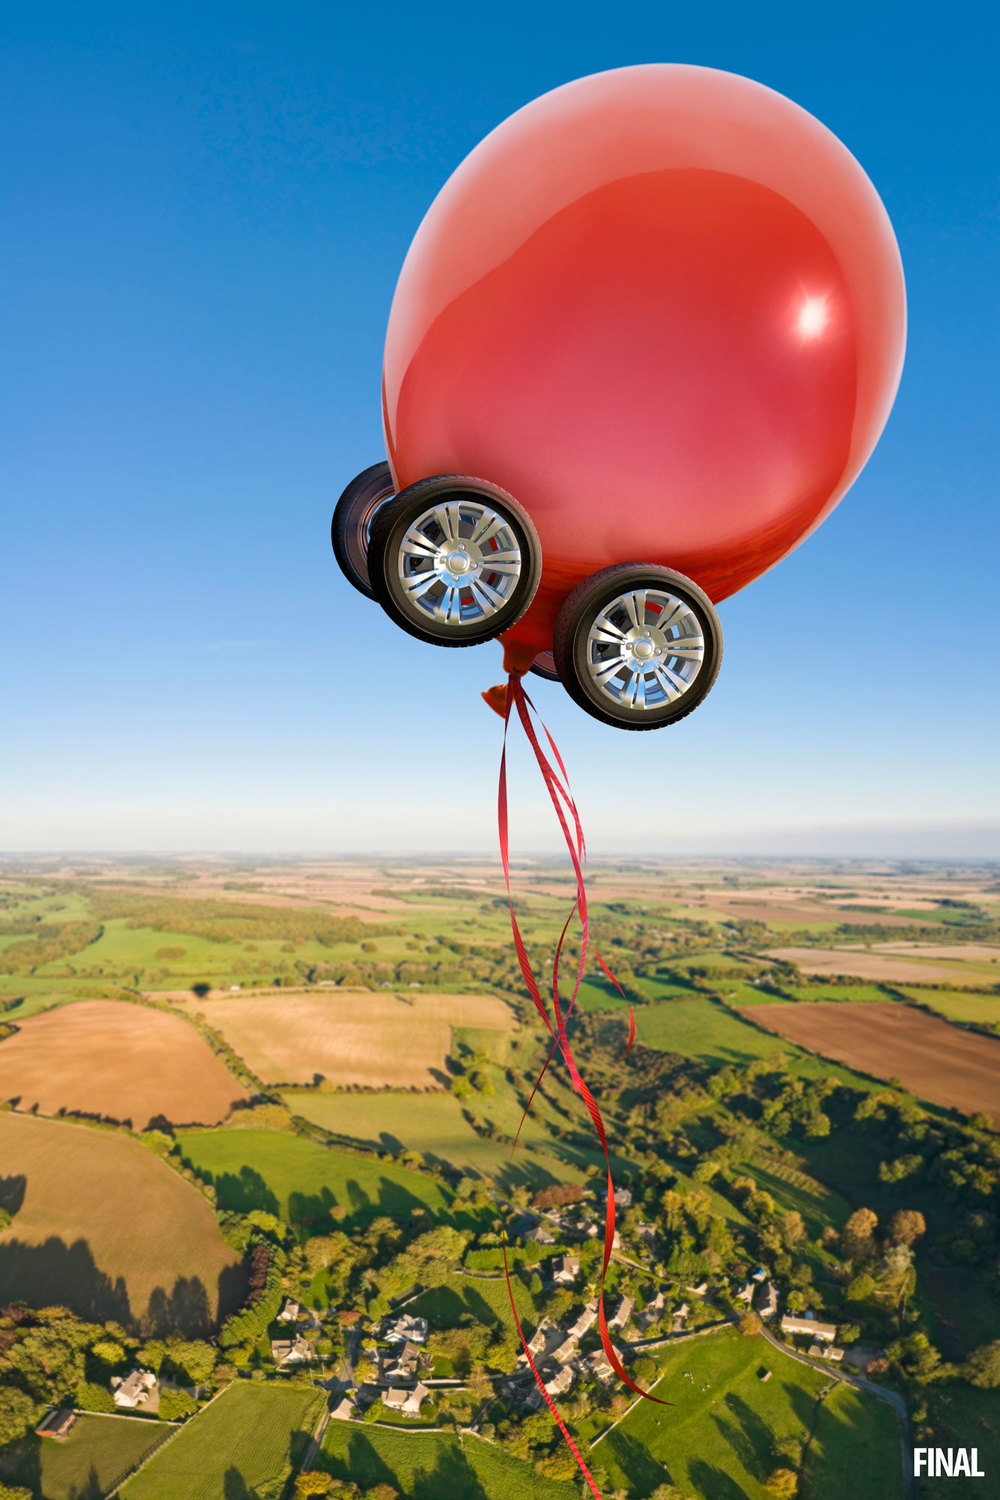 professional composite image of balloon with wheels floating away